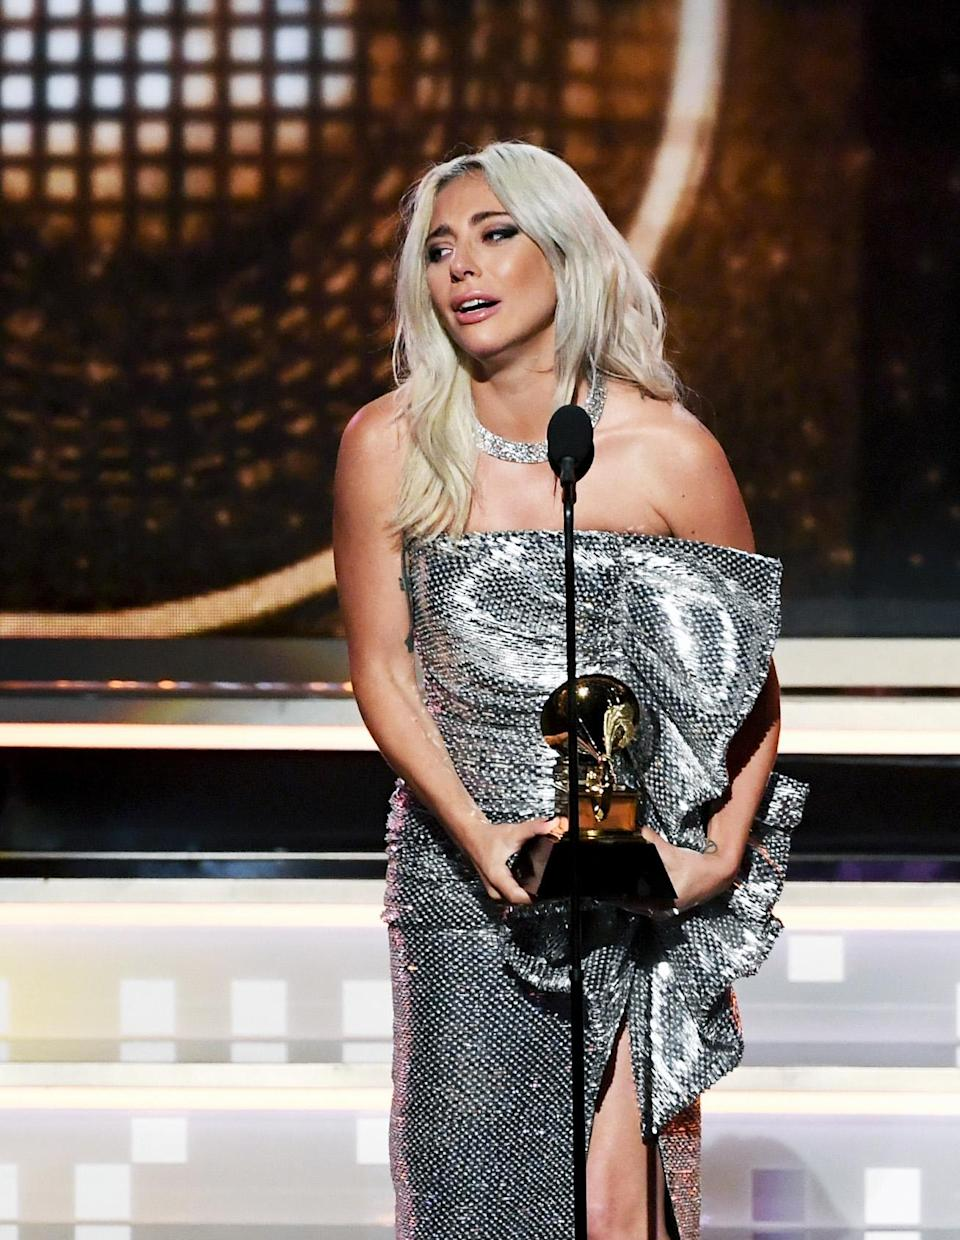 """Lady Gaga accepts the Best Pop Duo/Group Performance award for """"Shallow"""" (with Bradley Cooper) at the 61st Annual Grammy Awards Feb. 10, 2019, in Los Angeles. (Photo: Kevin Winter/Getty Images for the Recording Academy)"""